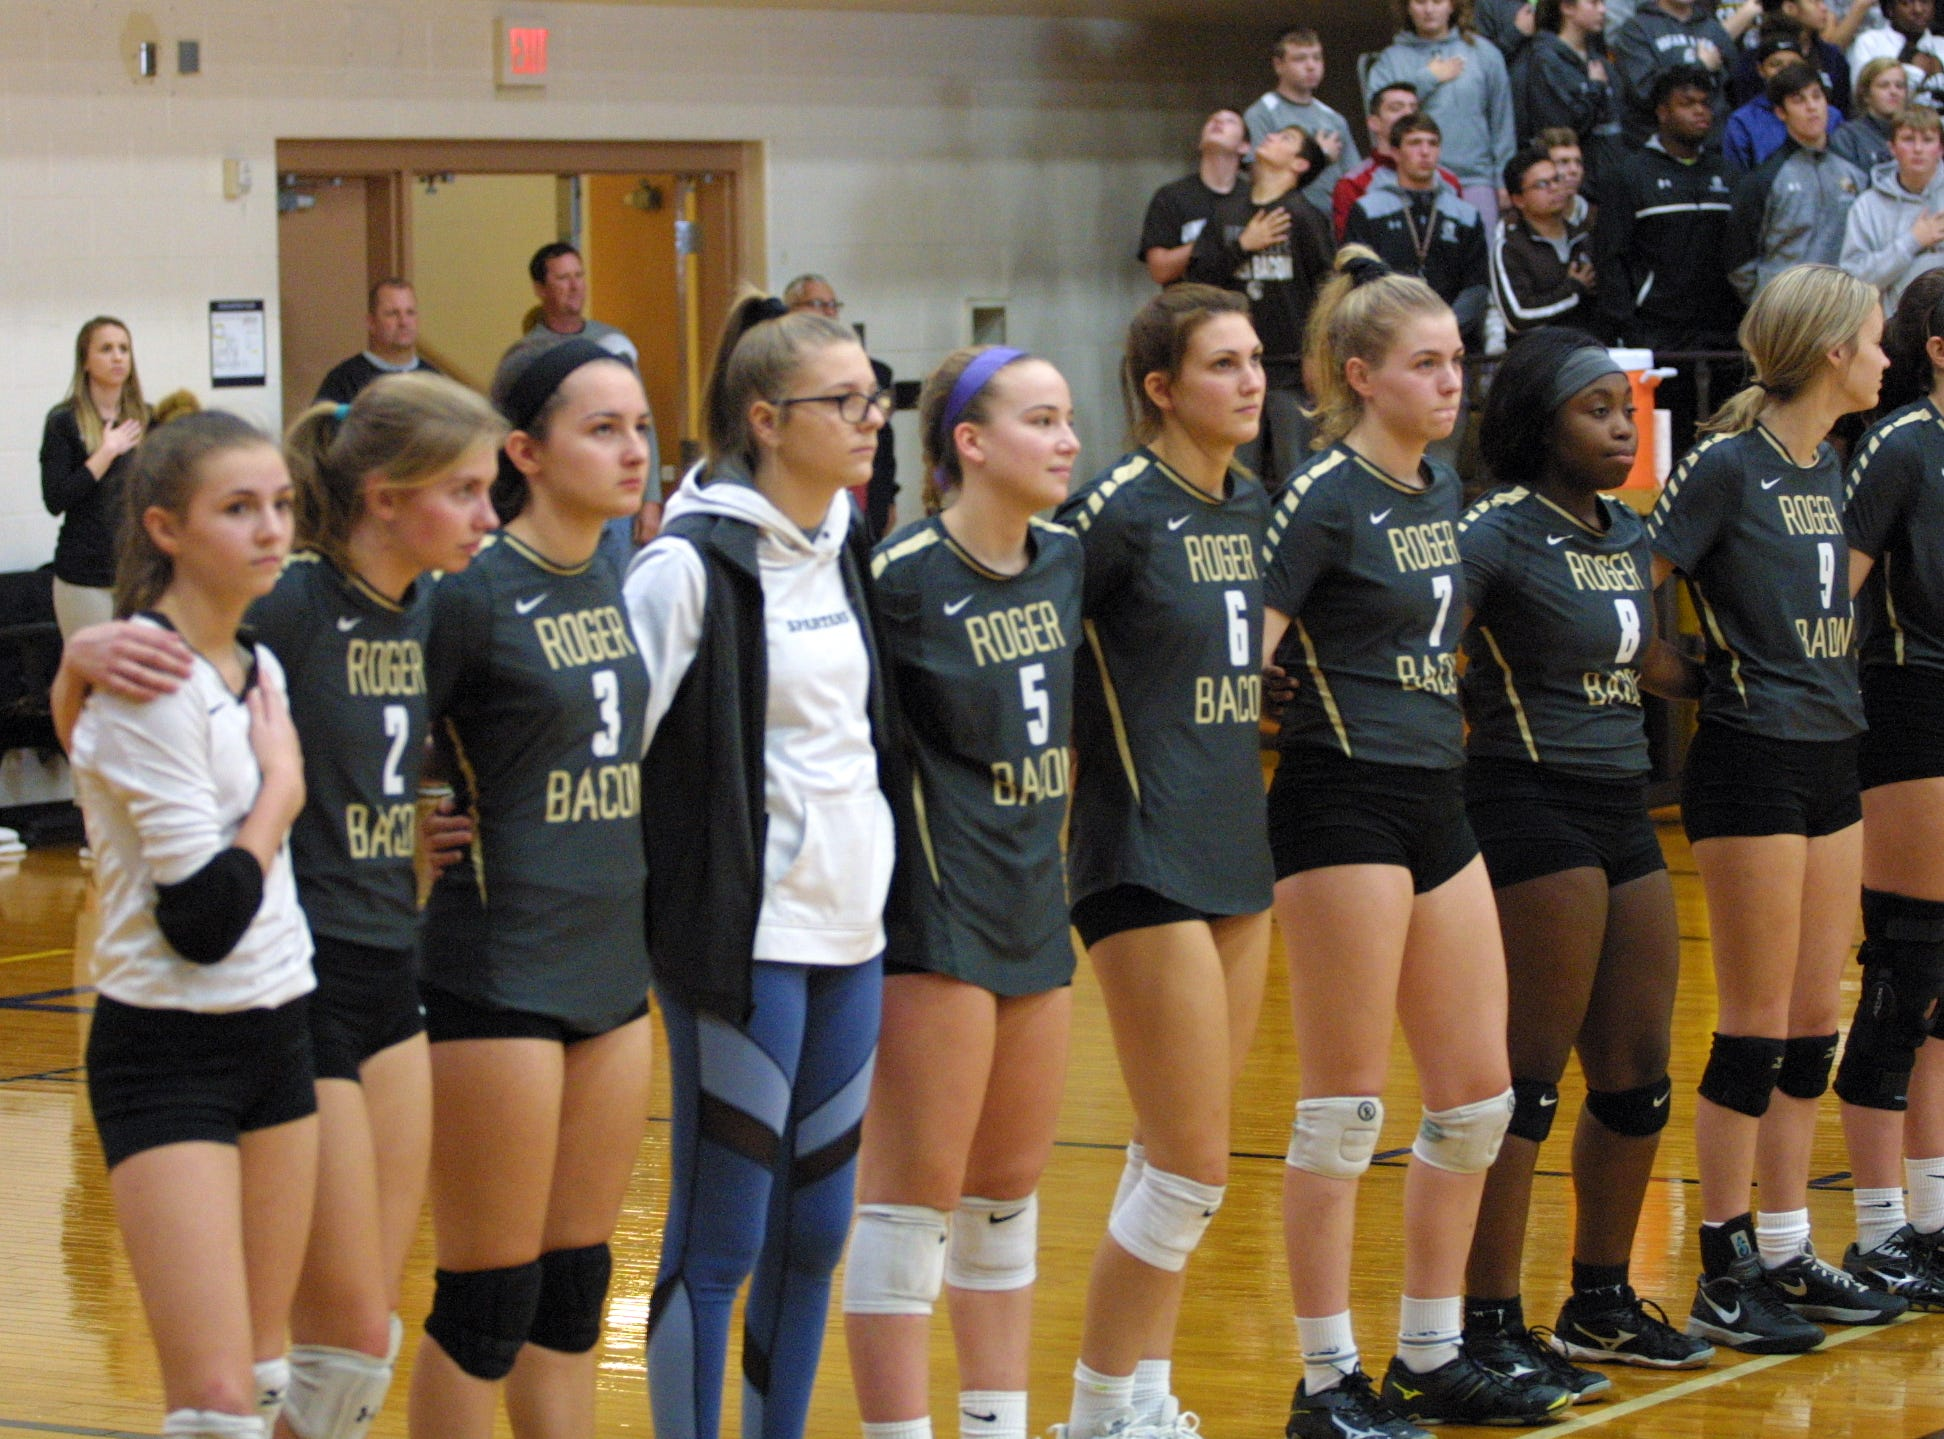 Roger Bacon players are announced before their team's match against Bishop Fenwick in the regional final at Butler High School, Saturday, Nov. 3, 2018.